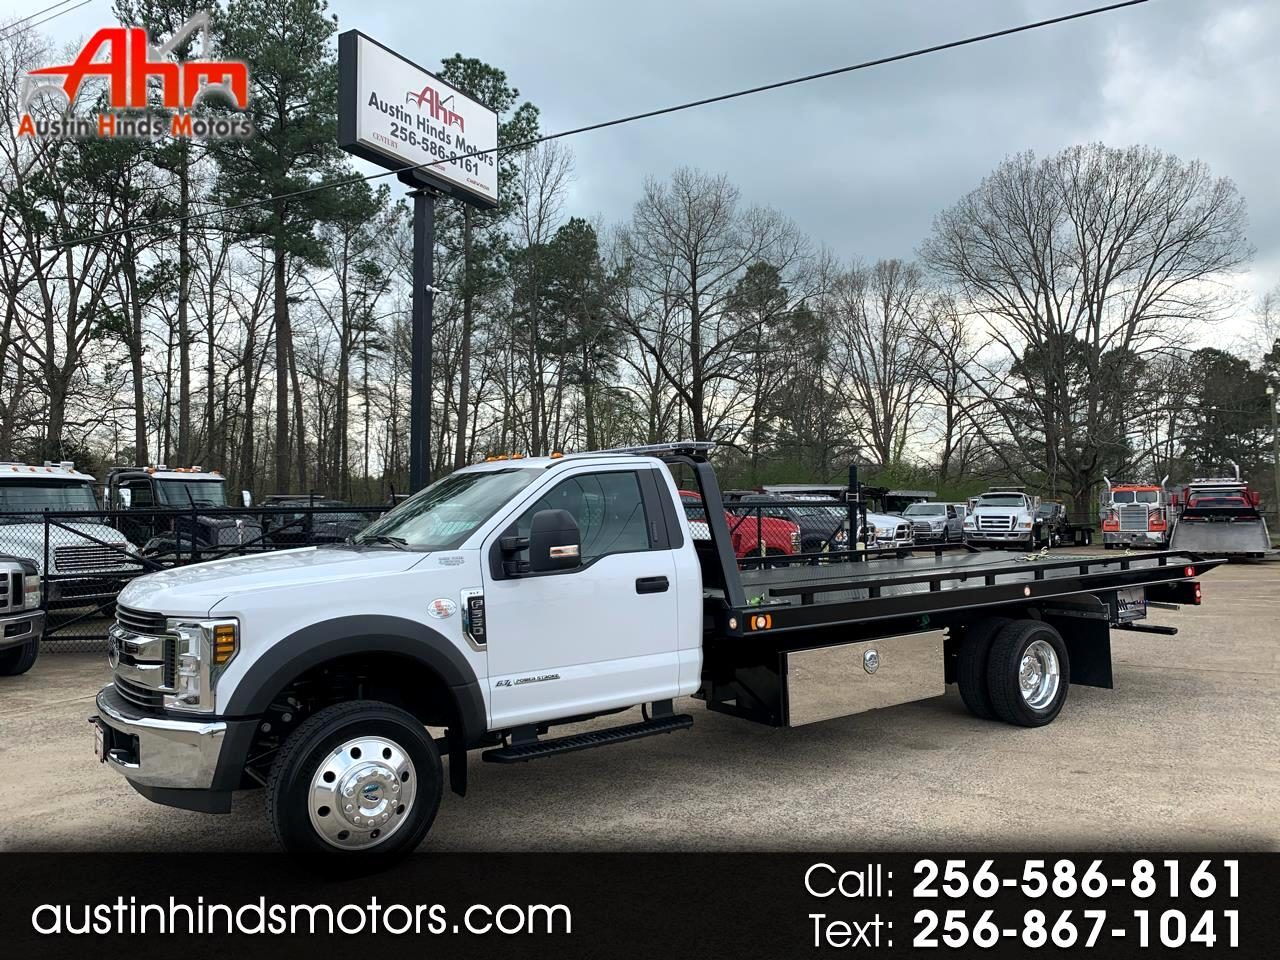 Ford F-550 Super Duty XLT 2019